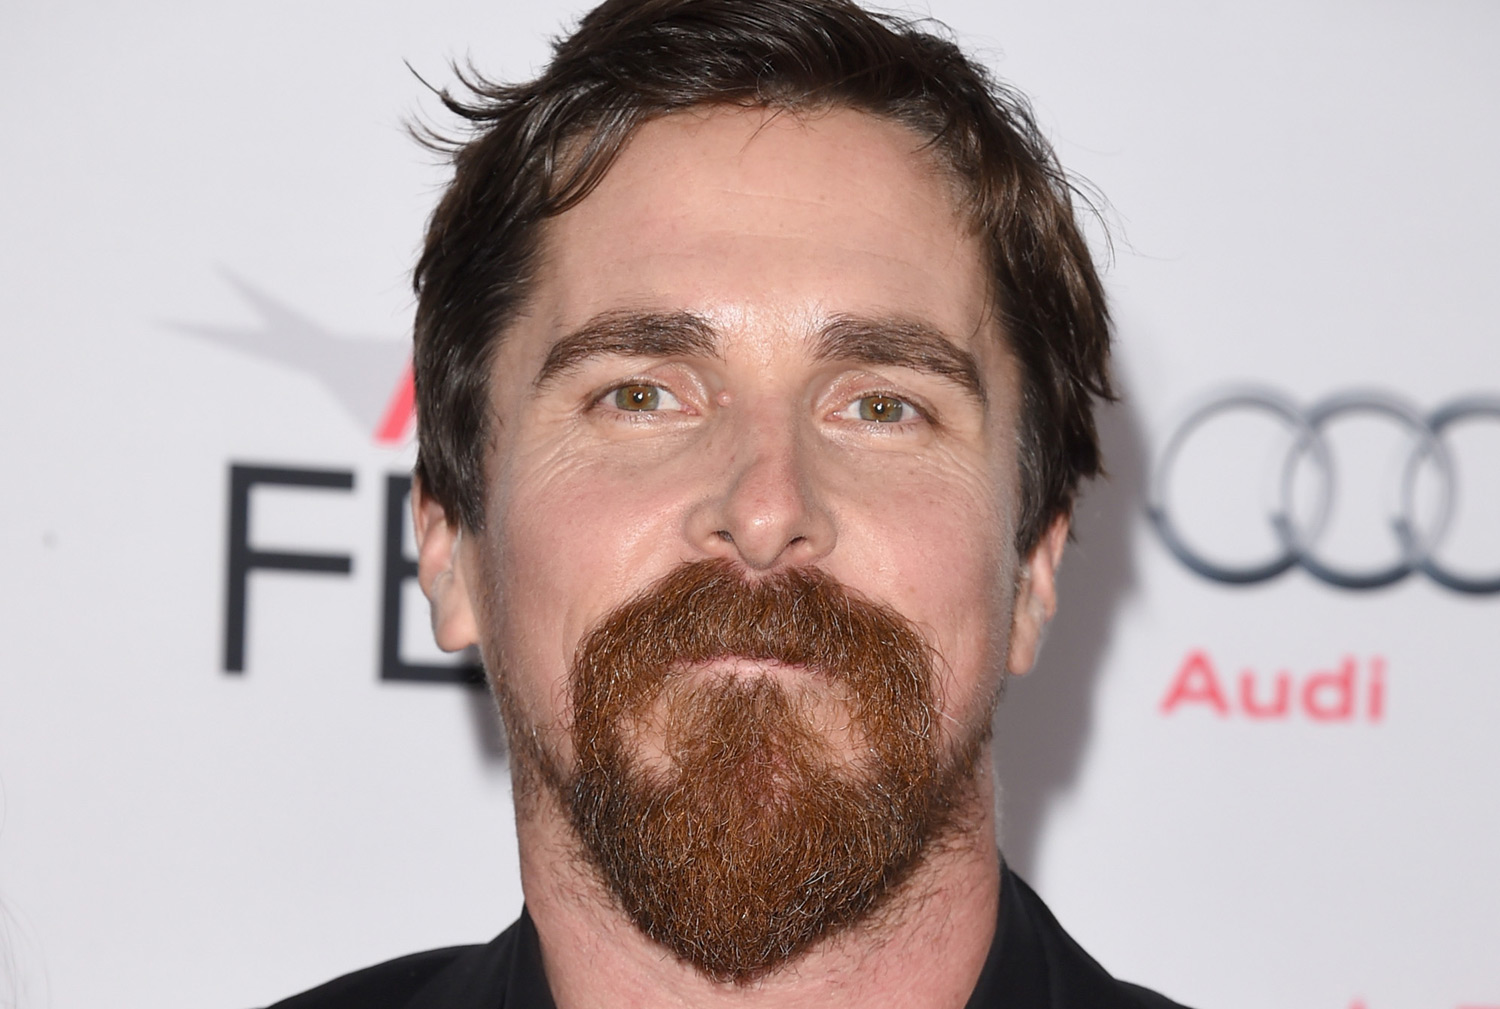 christian bale drops out of movie due to health concern social